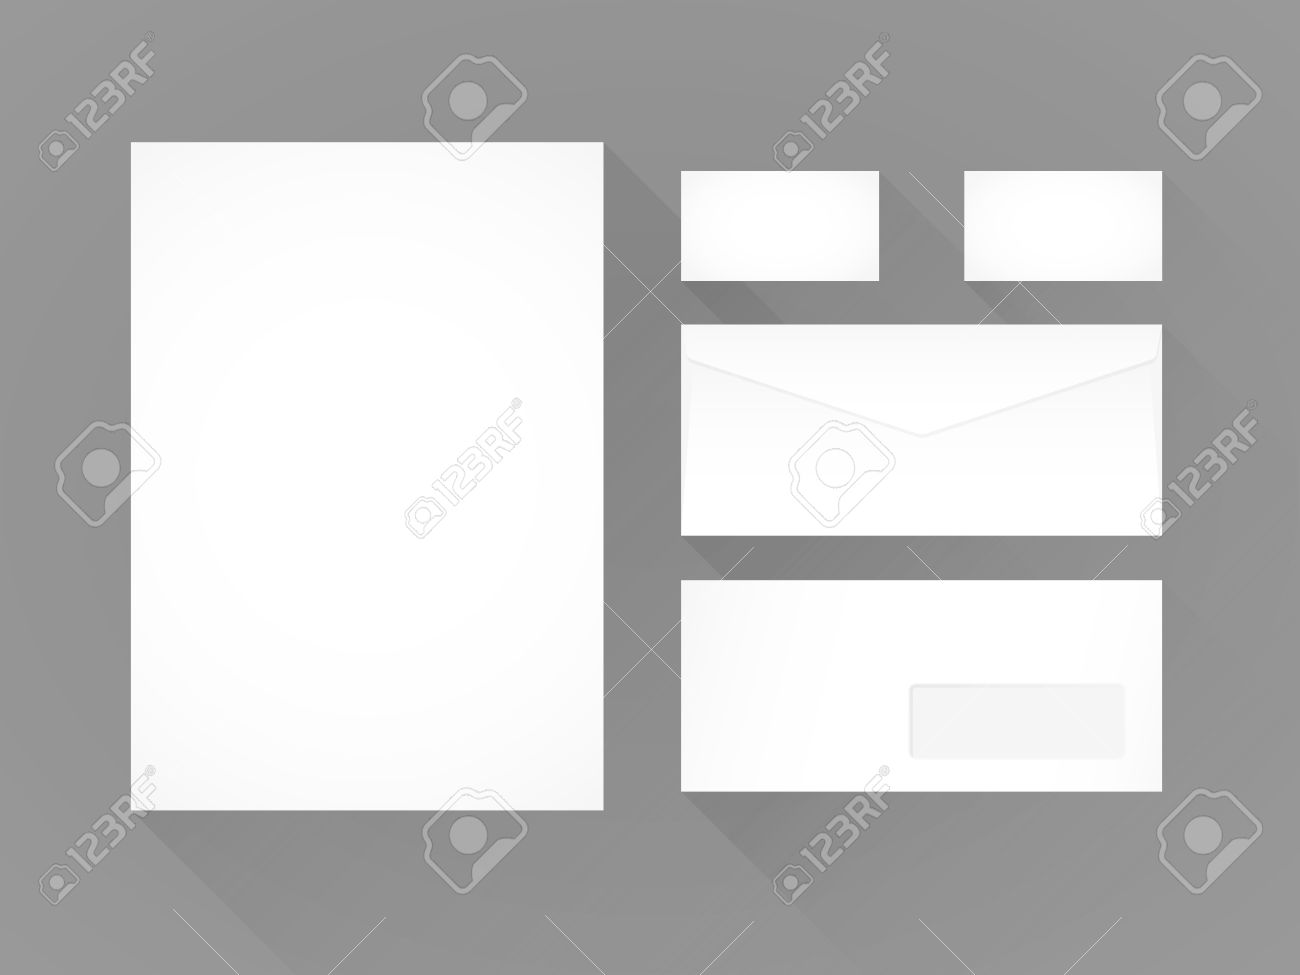 Branding identity template grey background letterhead envelope branding identity template grey background letterhead envelope and business card flat design flashek